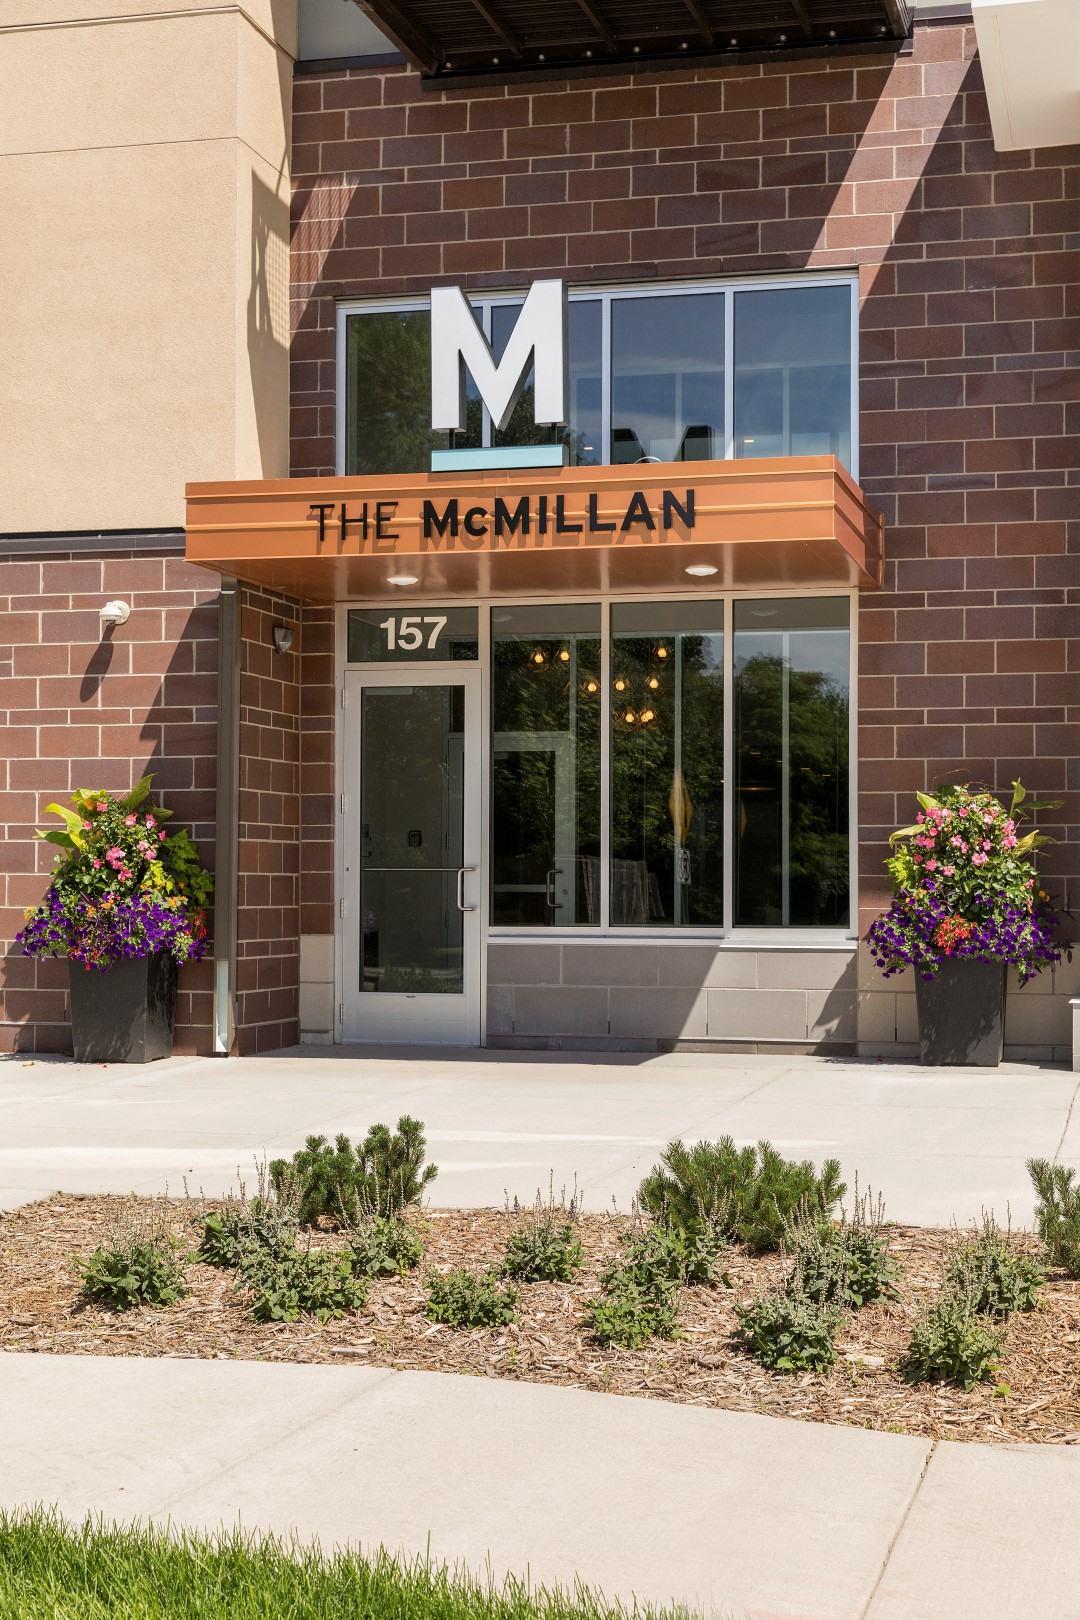 The McMillan Shoreview Exterior Signage